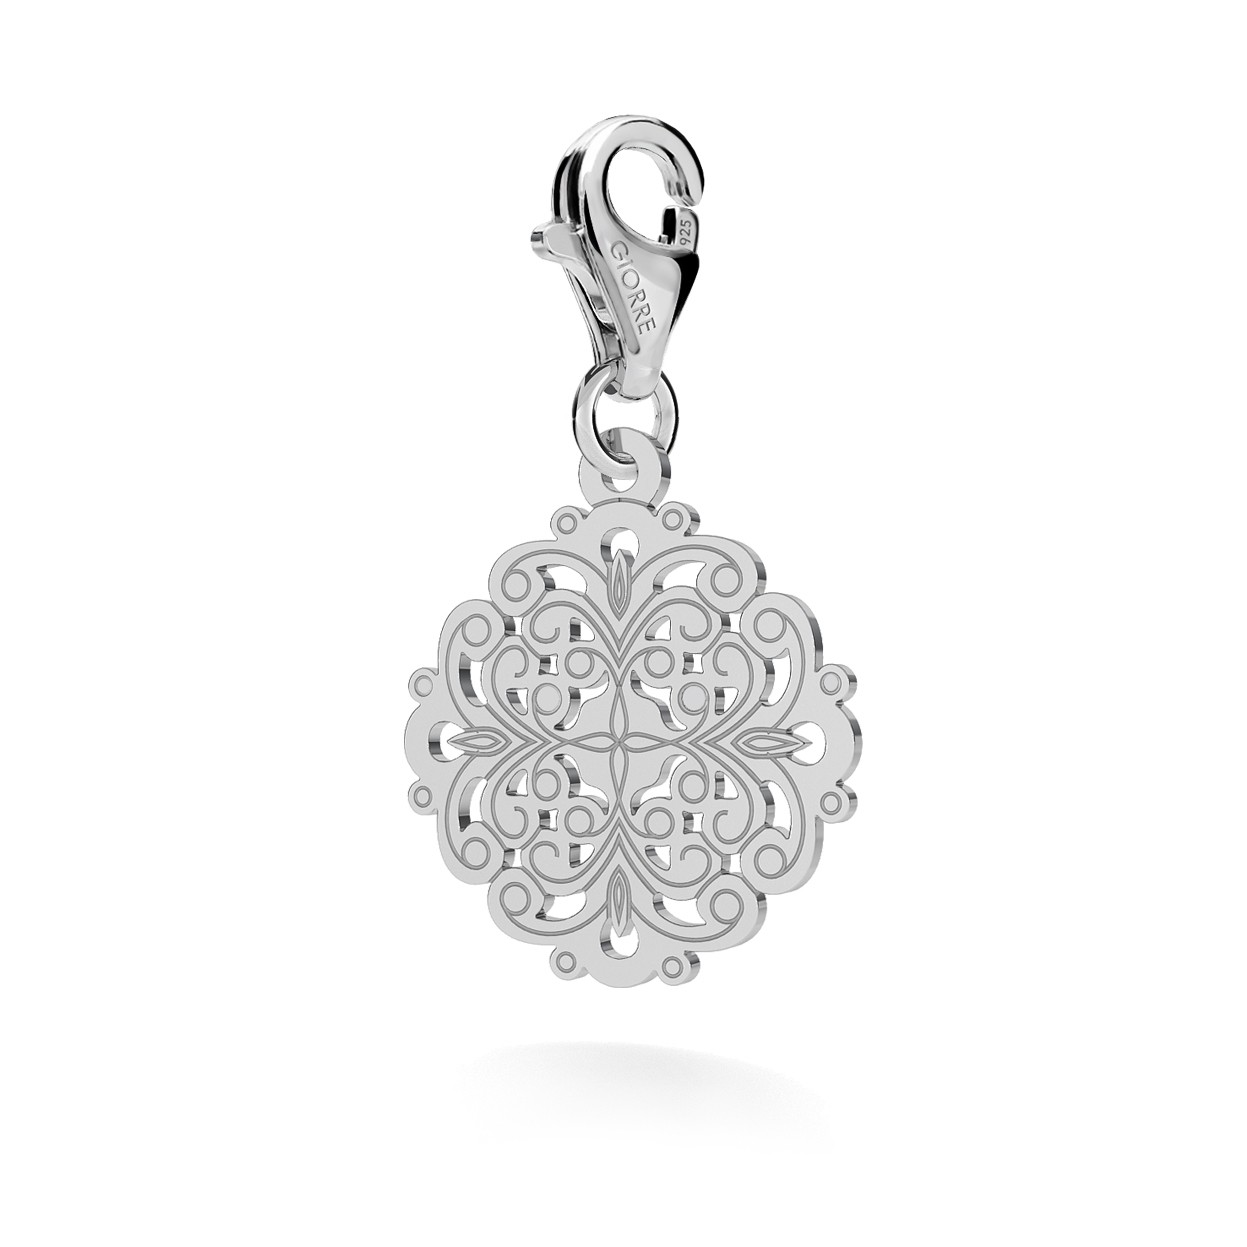 CHARM 106, GOTIC PENDANT, STERLING SILVER (925) RHODIUM OR GOLD PLATED